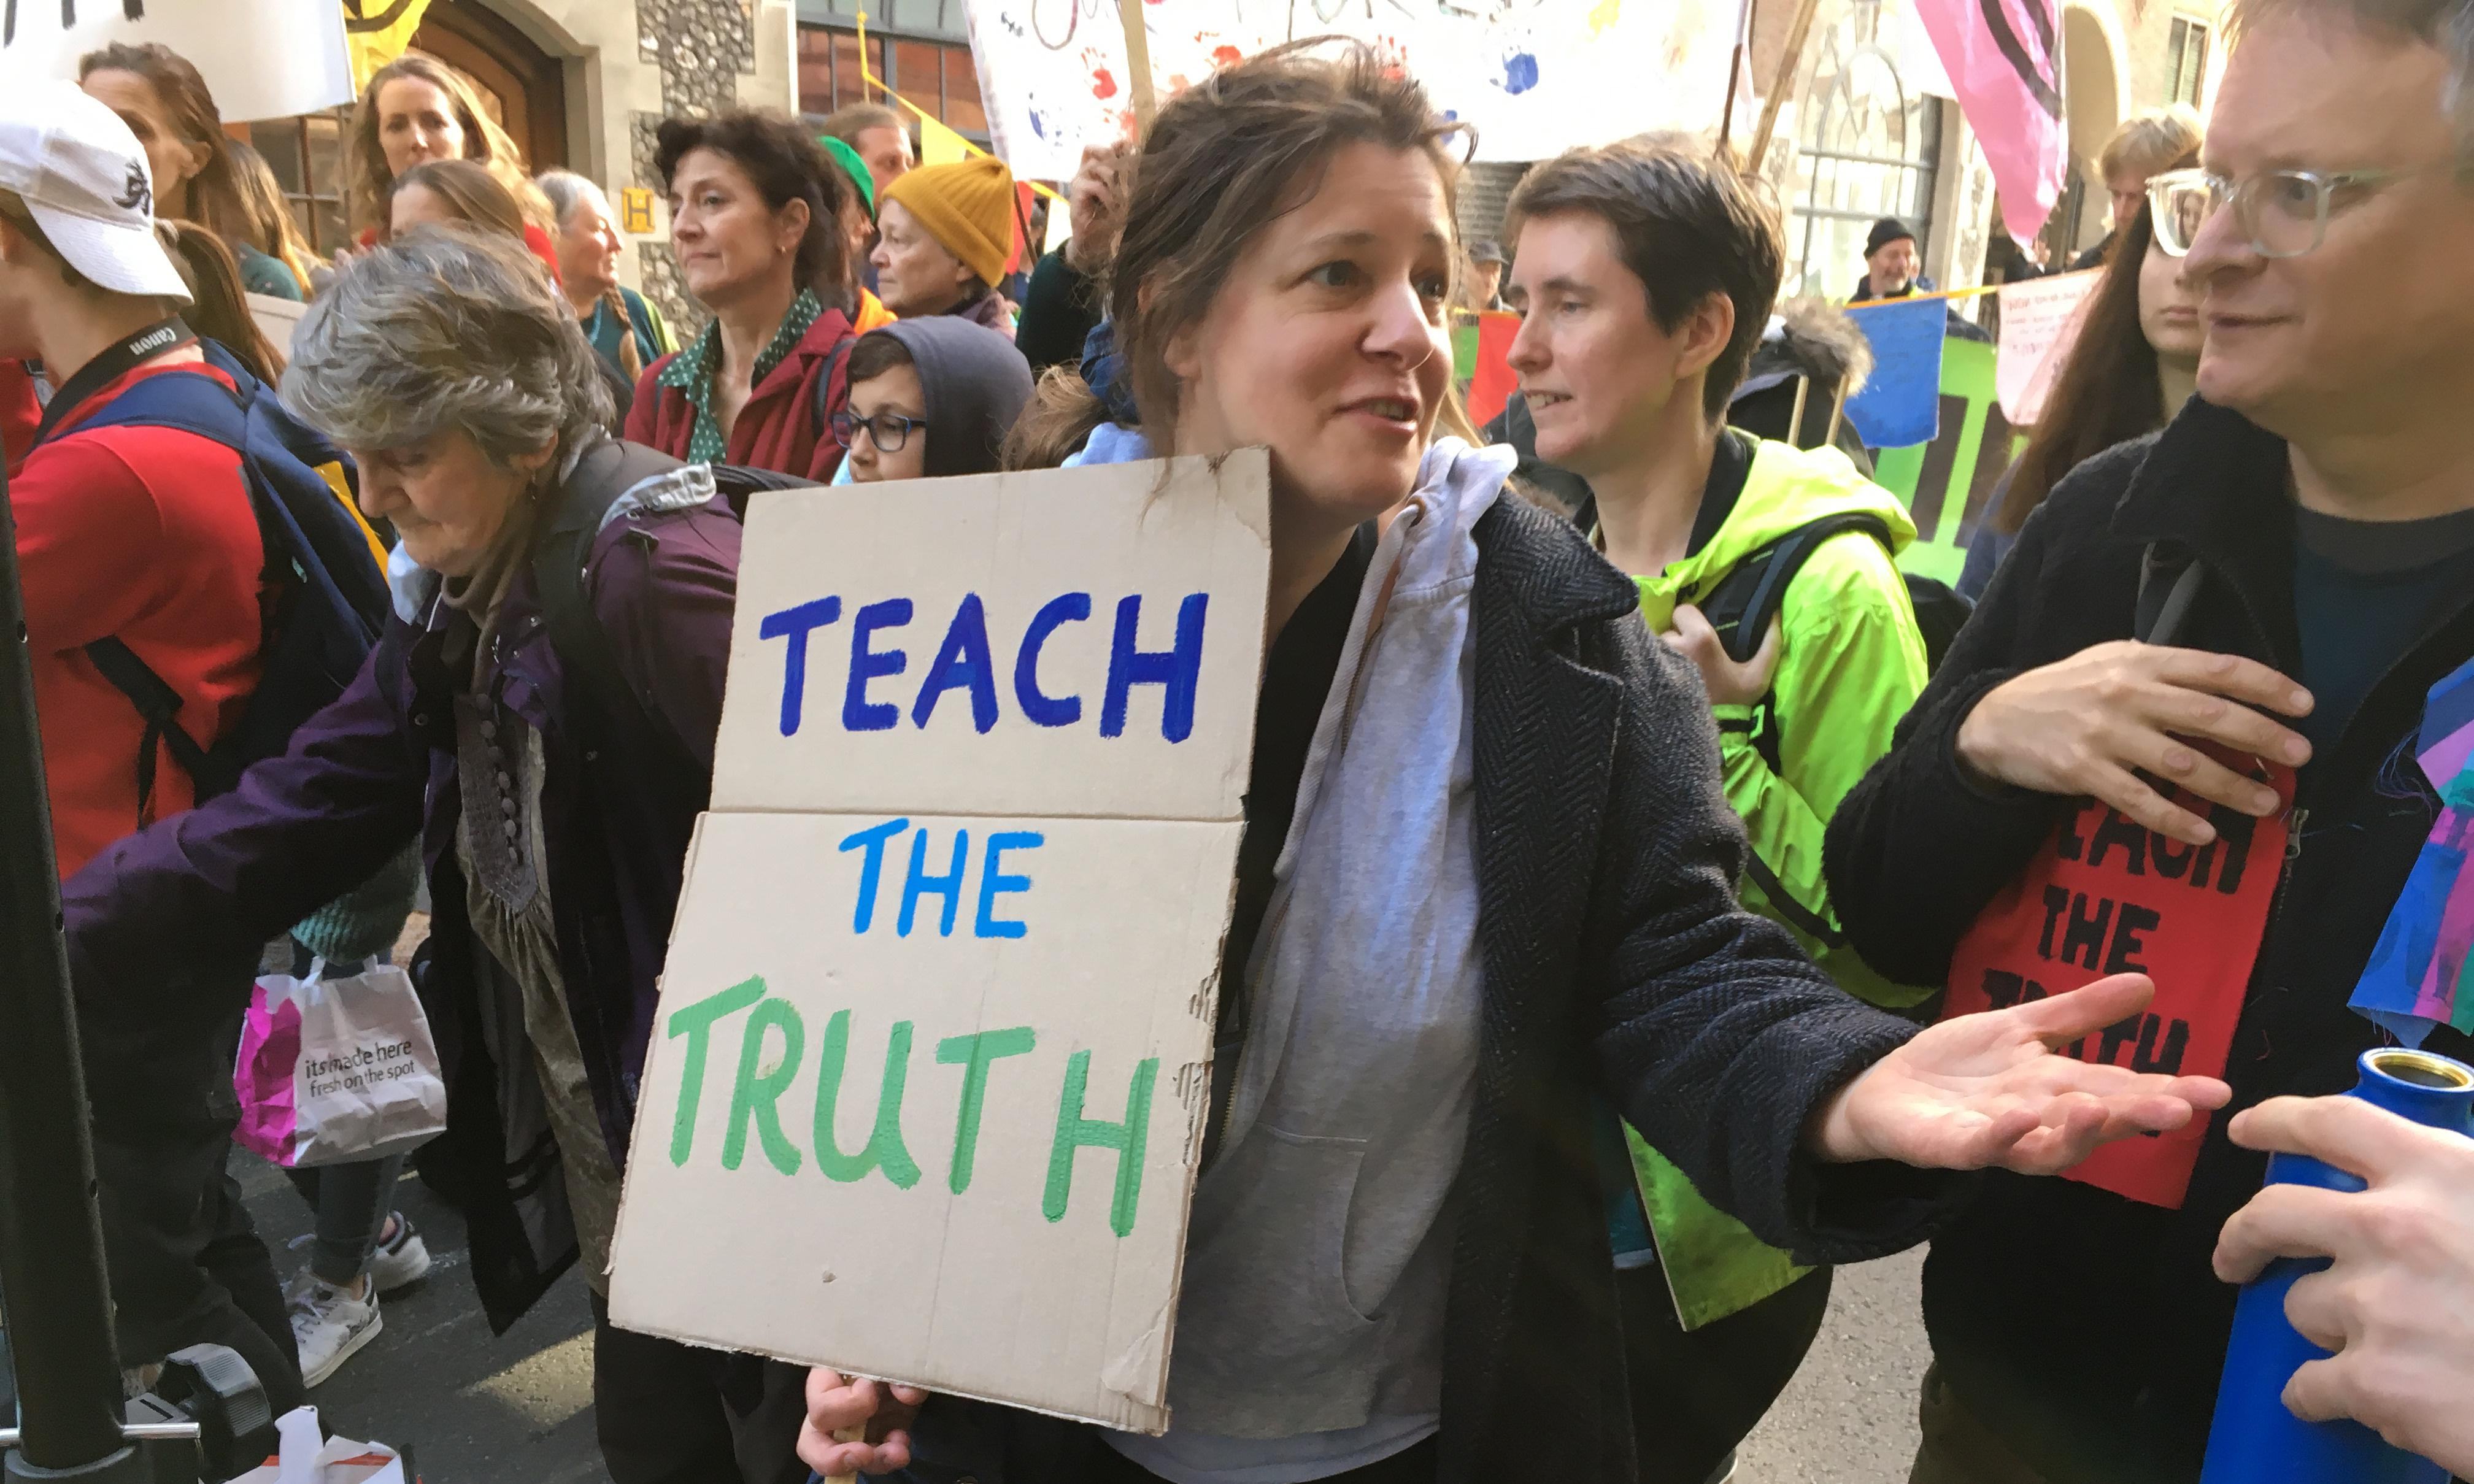 Teachers and students stage mock climate classes in Whitehall